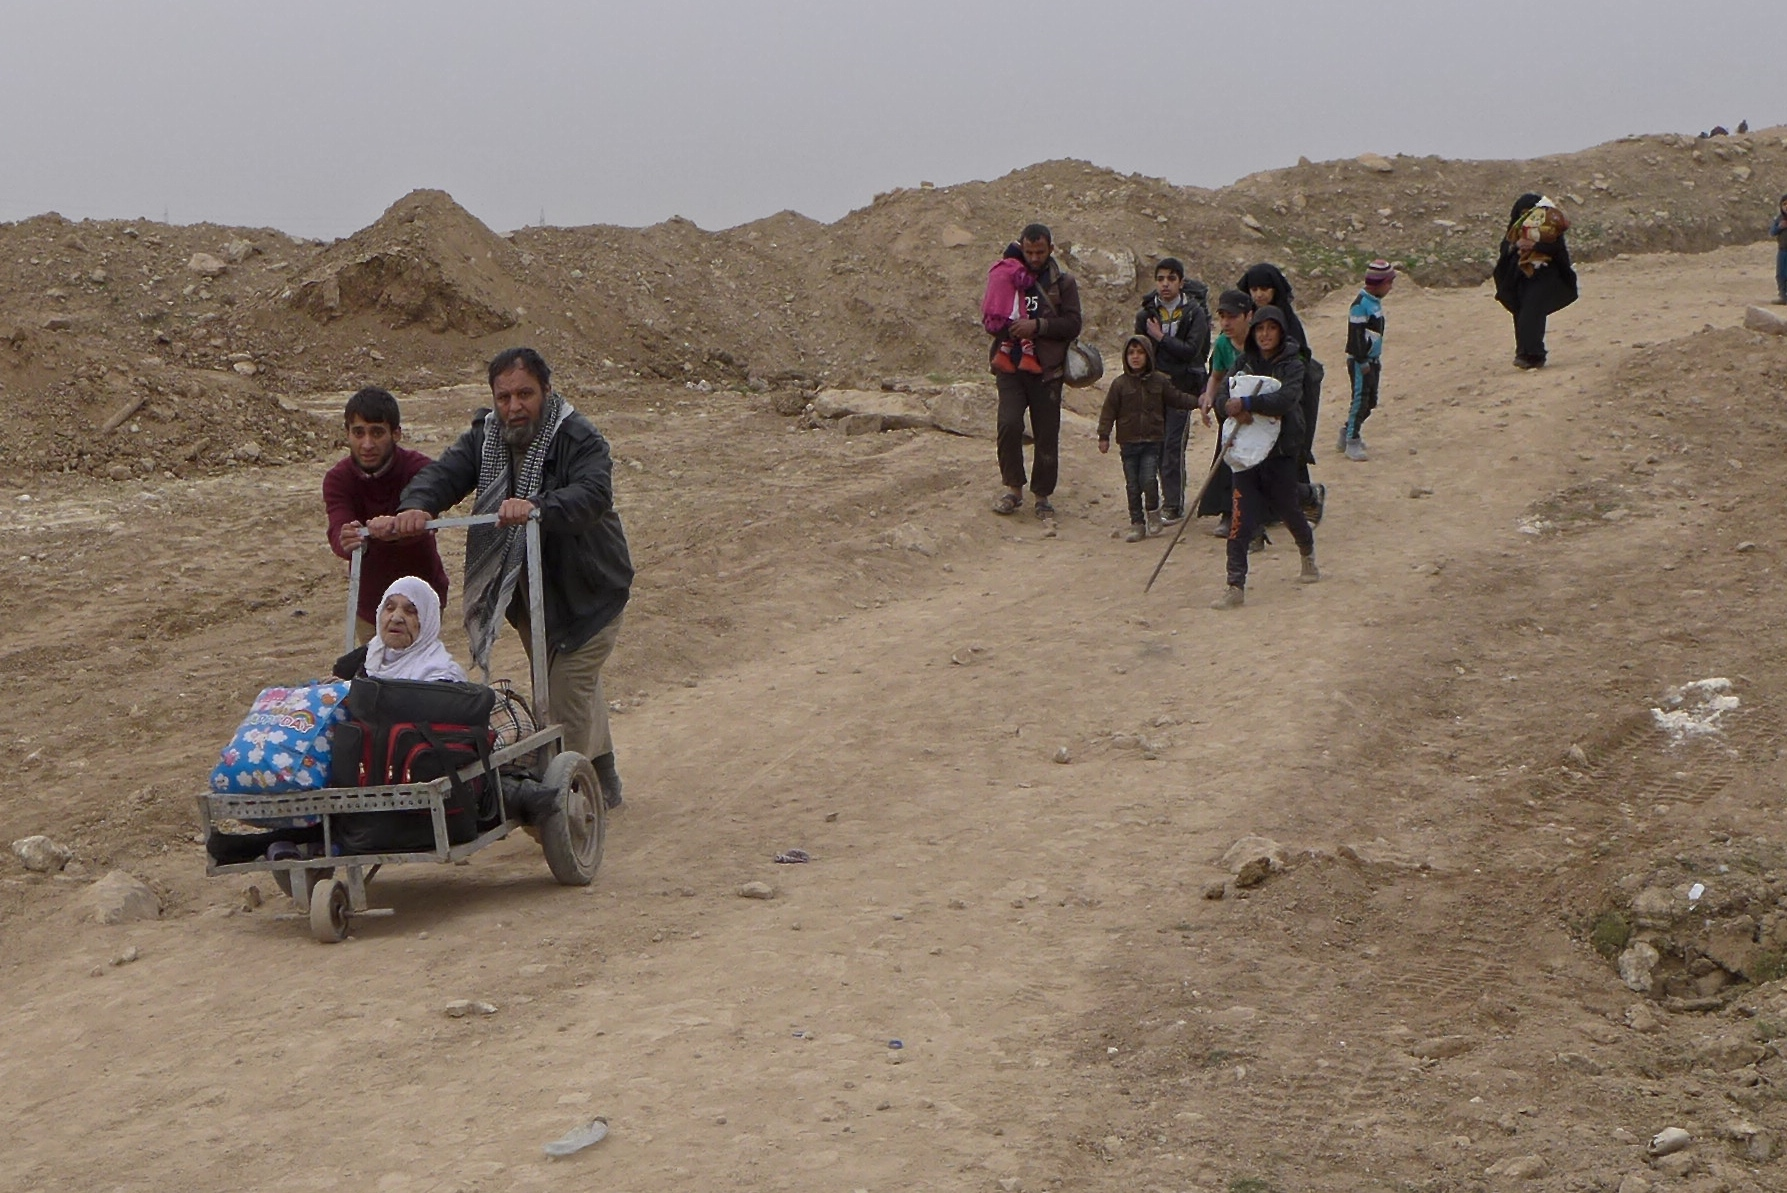 Barefoot flight from Mosul: The long road to safety